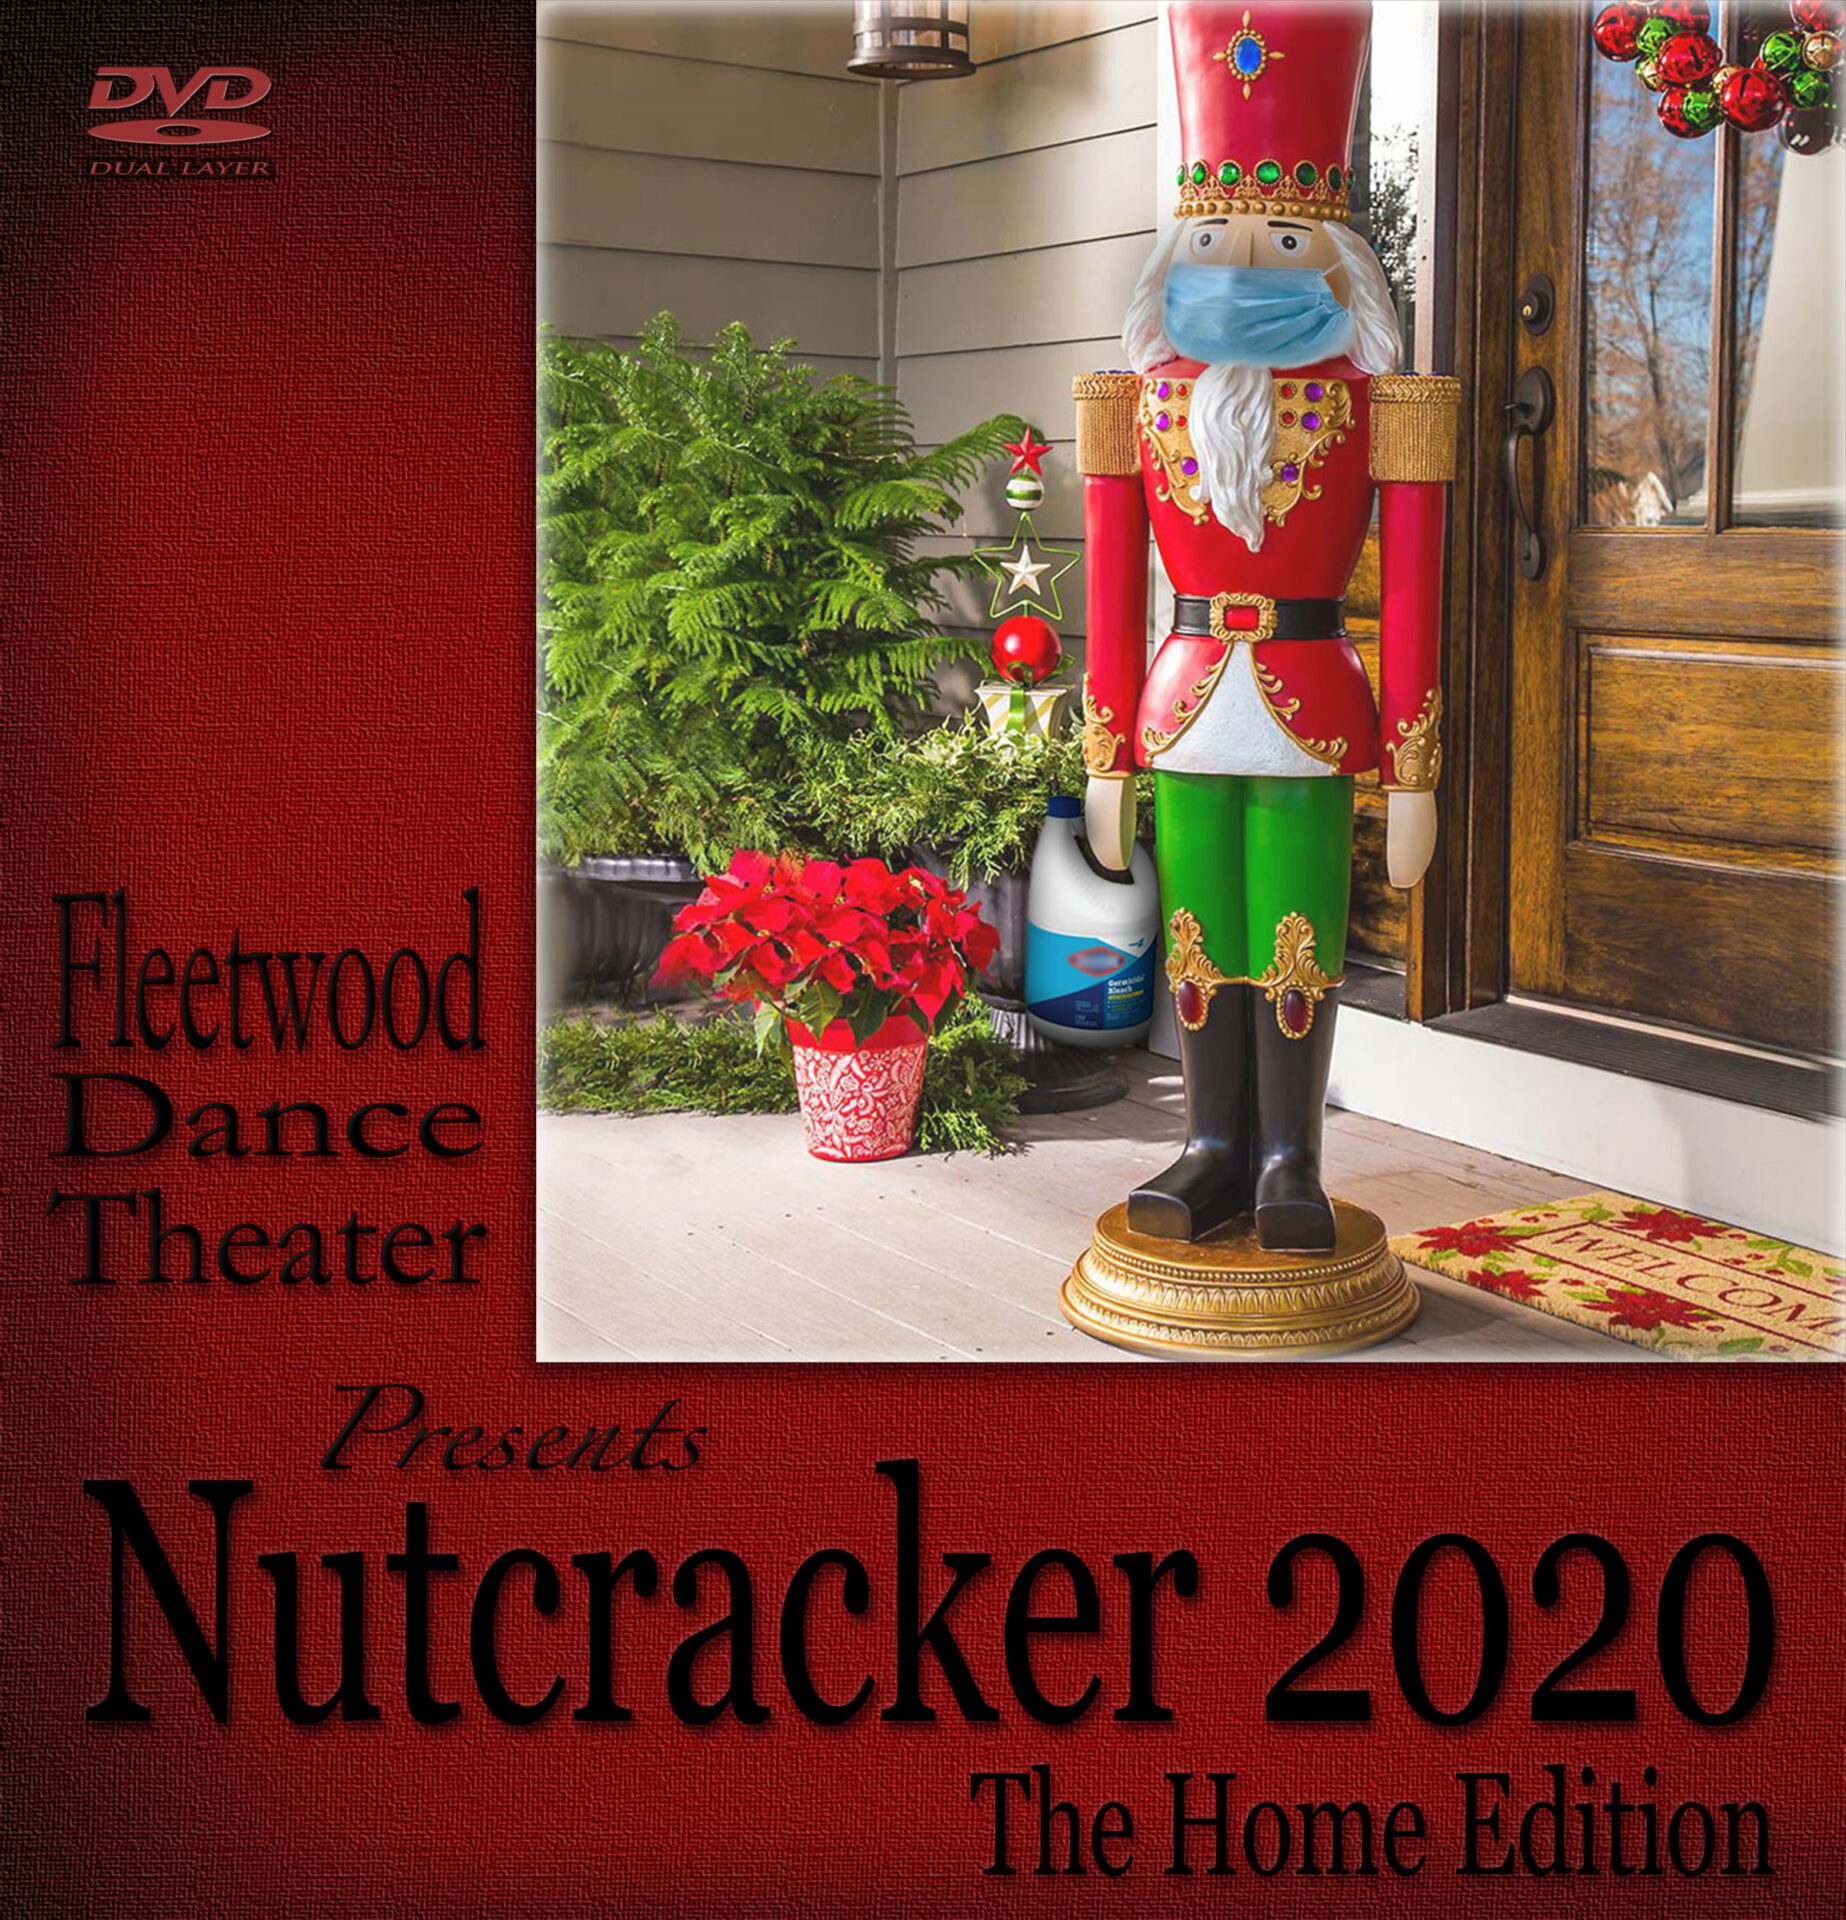 NUTCRACKER 2020 DVD Cover Art